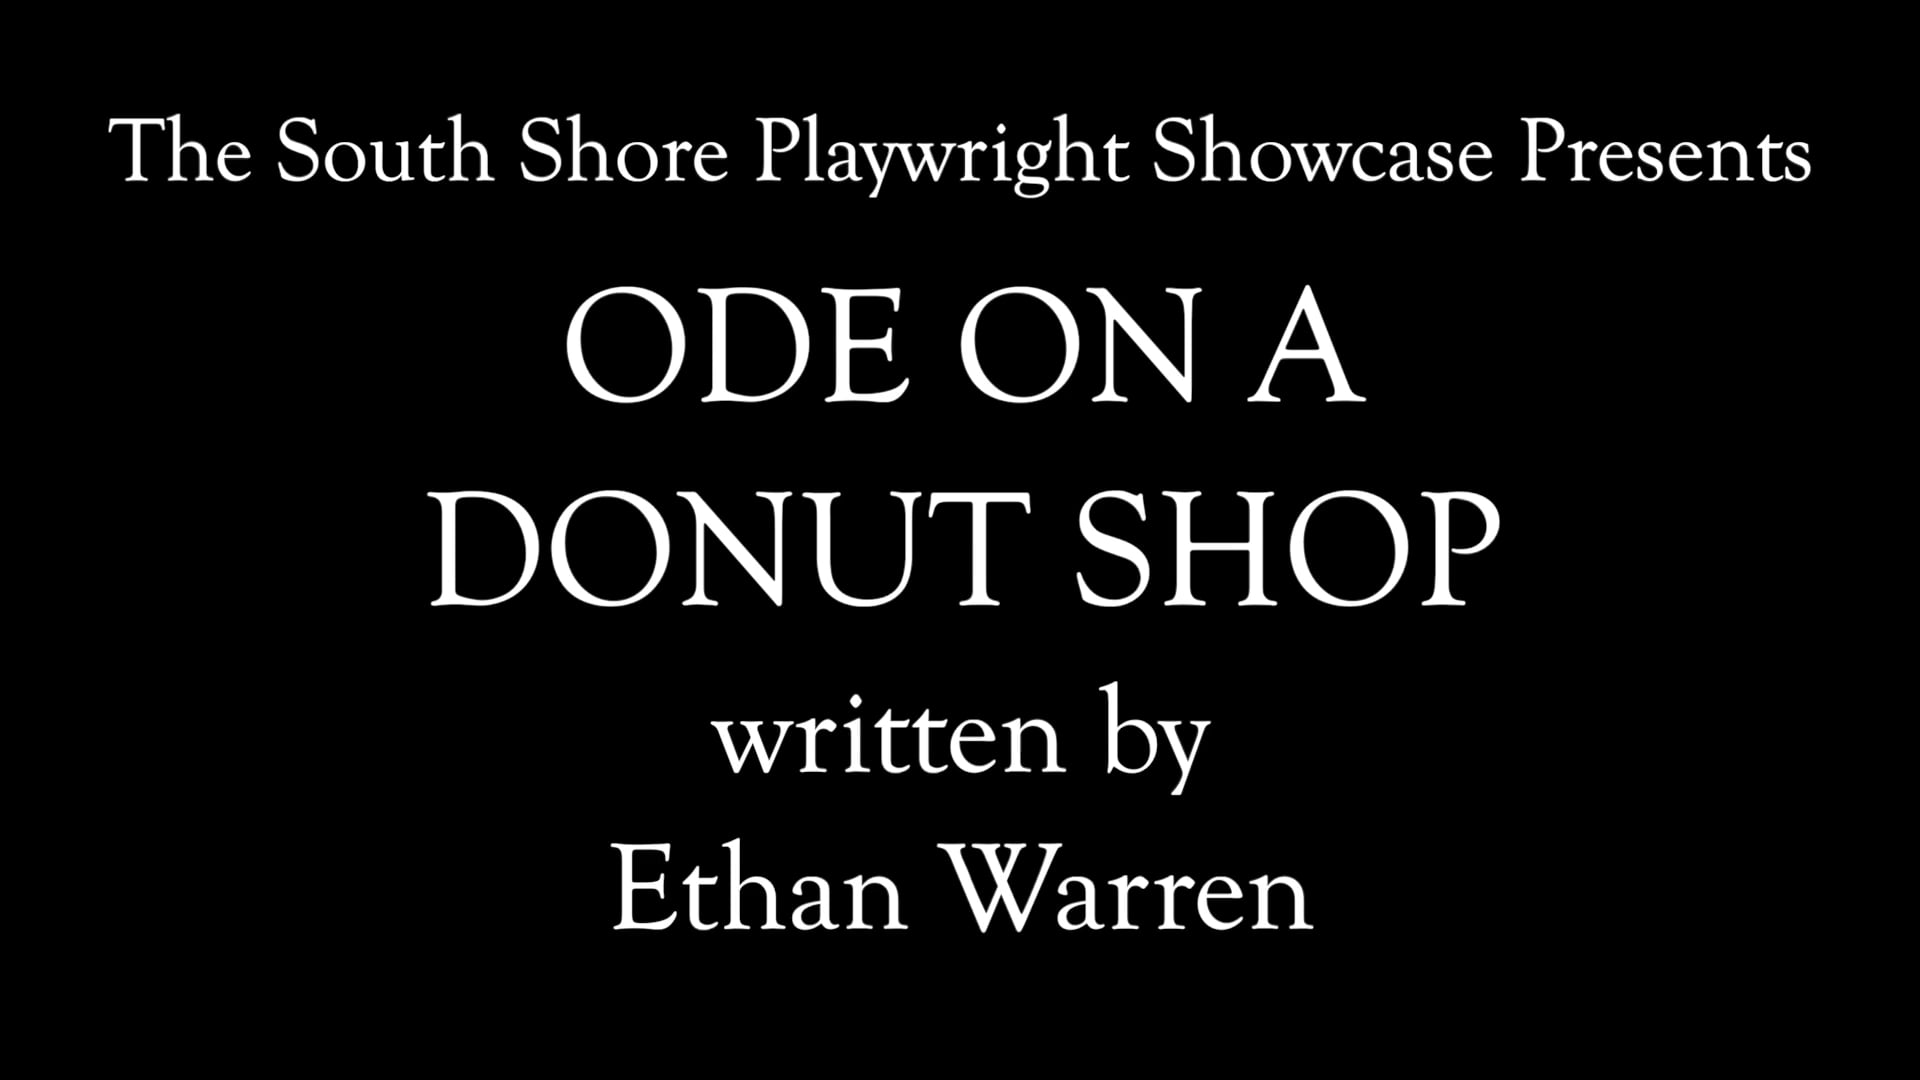 Ode on a Donut Shop (South Shore Playwright Showcase Presents)